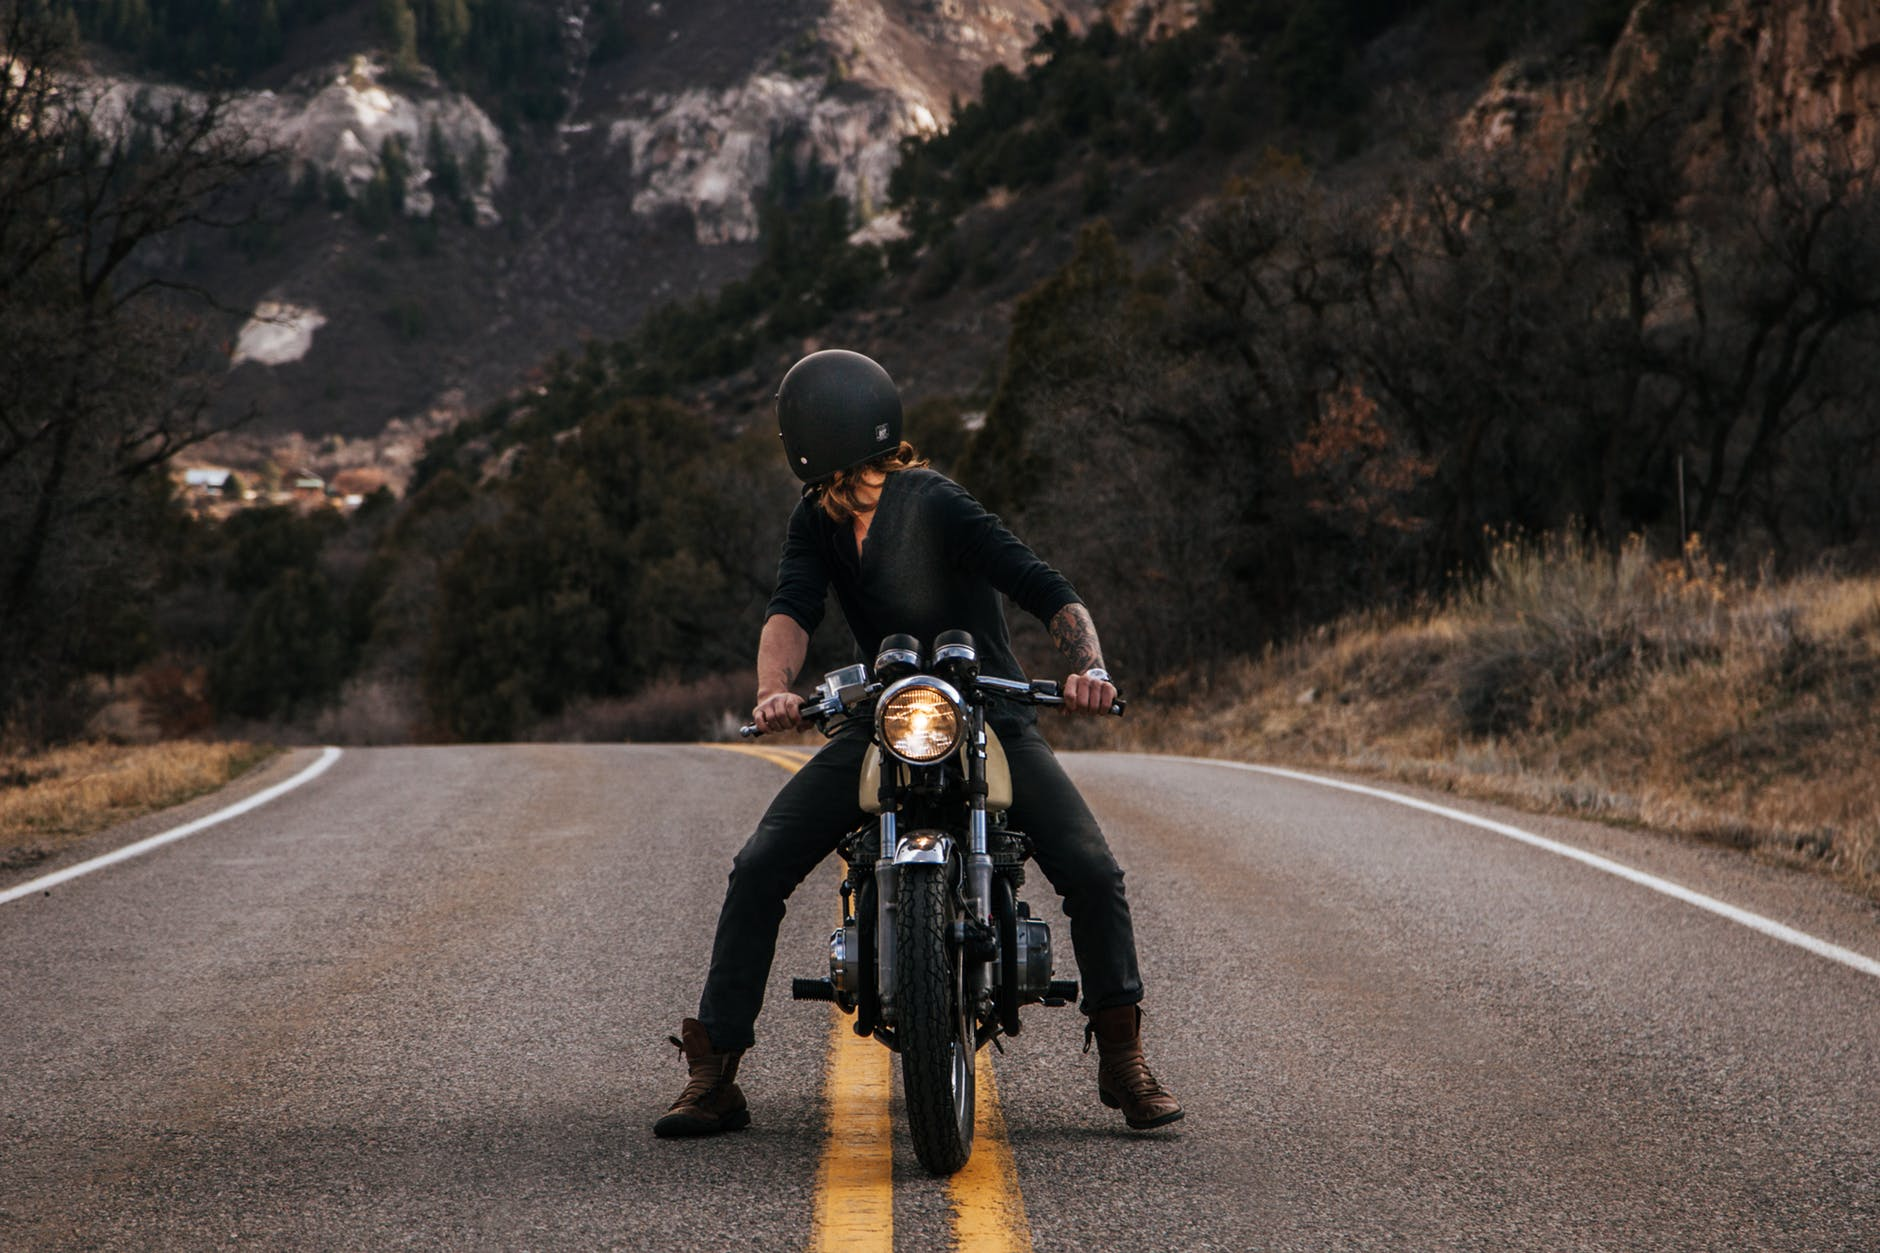 How to Have an Absolutely Amazing Motorcycle Road Trip